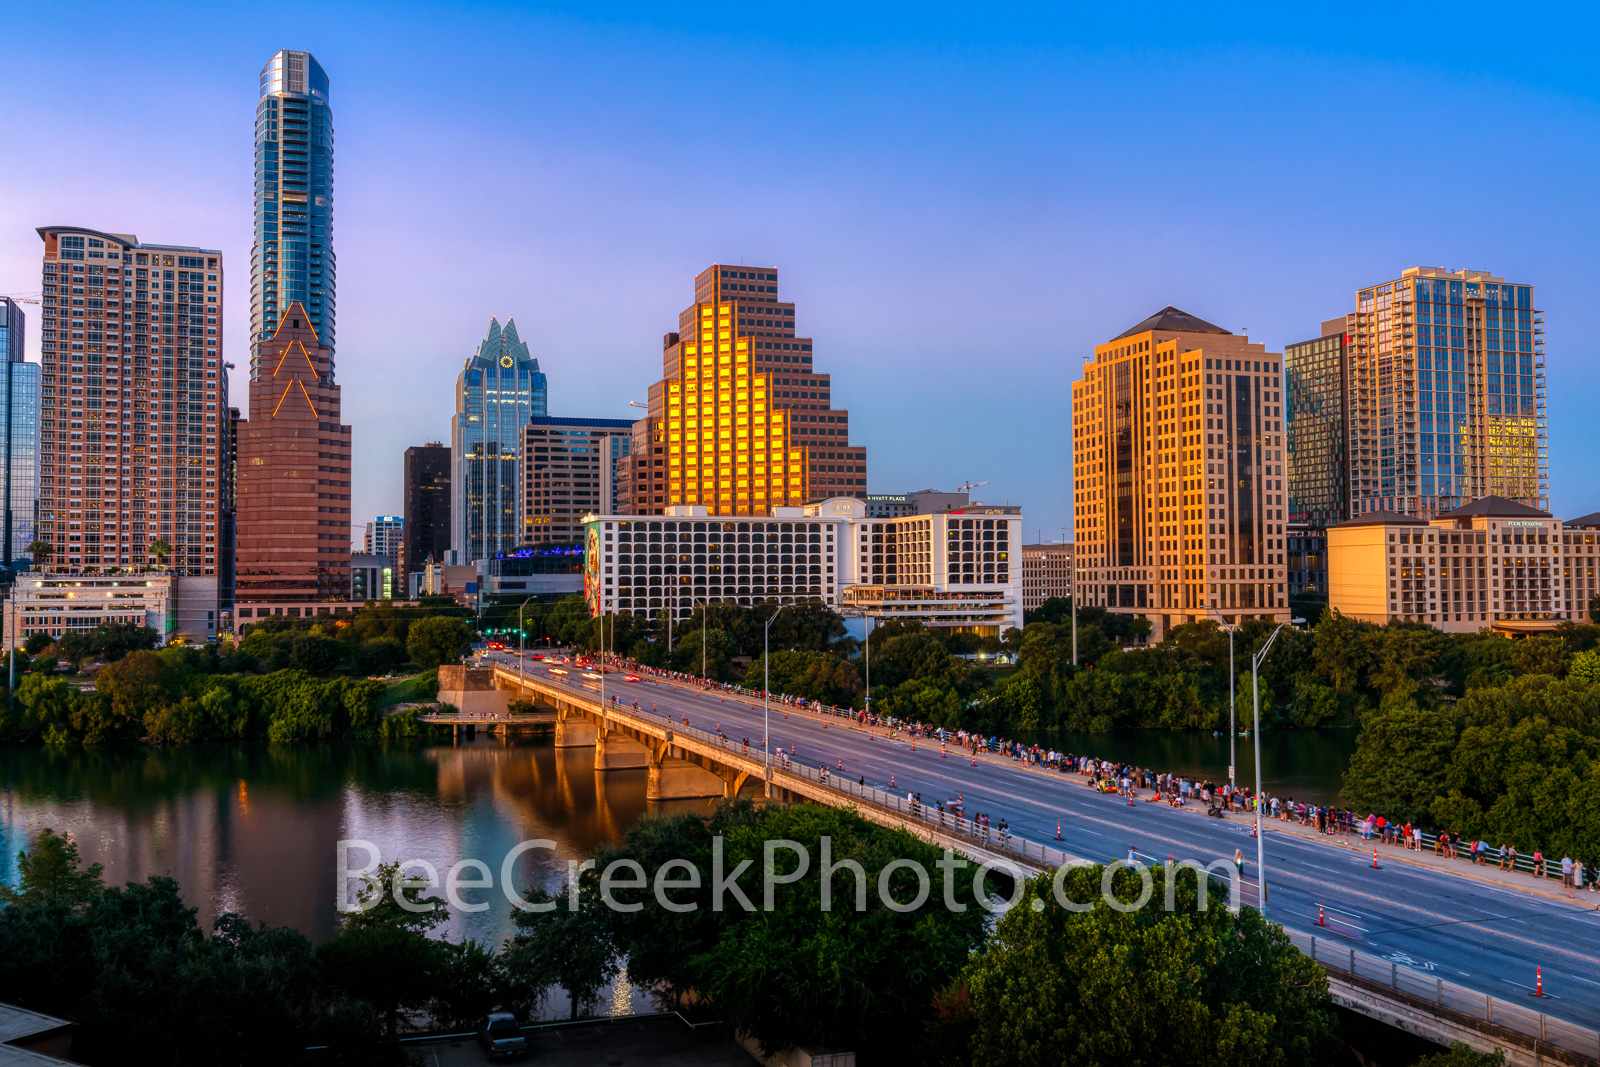 austin, texas, austin downtown, austin texas, austin skyline twilight, twilight, congress bridge, downtown austin, austin skyline, lady bird lake, golden glow, violet, pink, blue hour, congress, town , photo